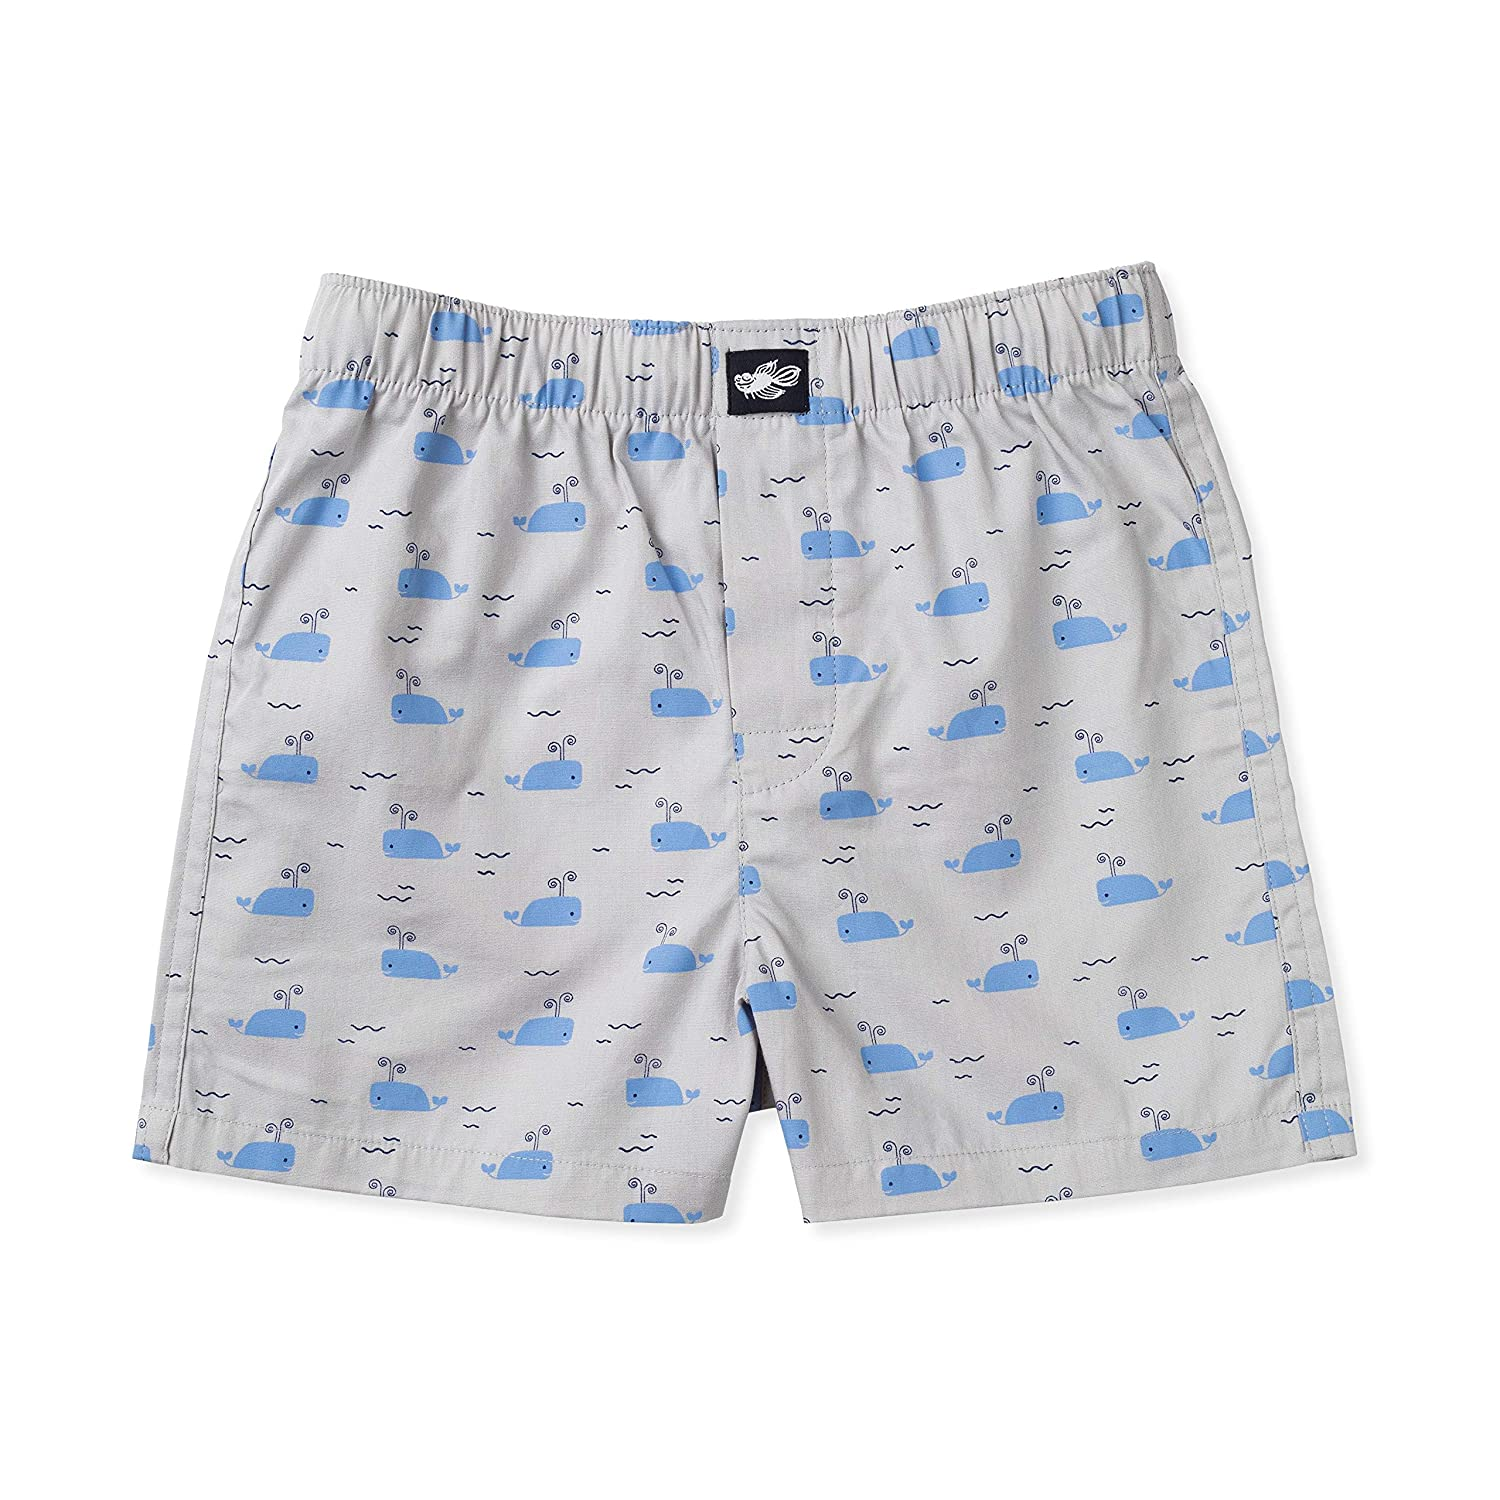 5-Pack Ryan Boys Boxer Shorts Childrens 100/% Woven Combed Cotton Underwear Lucky /& Me